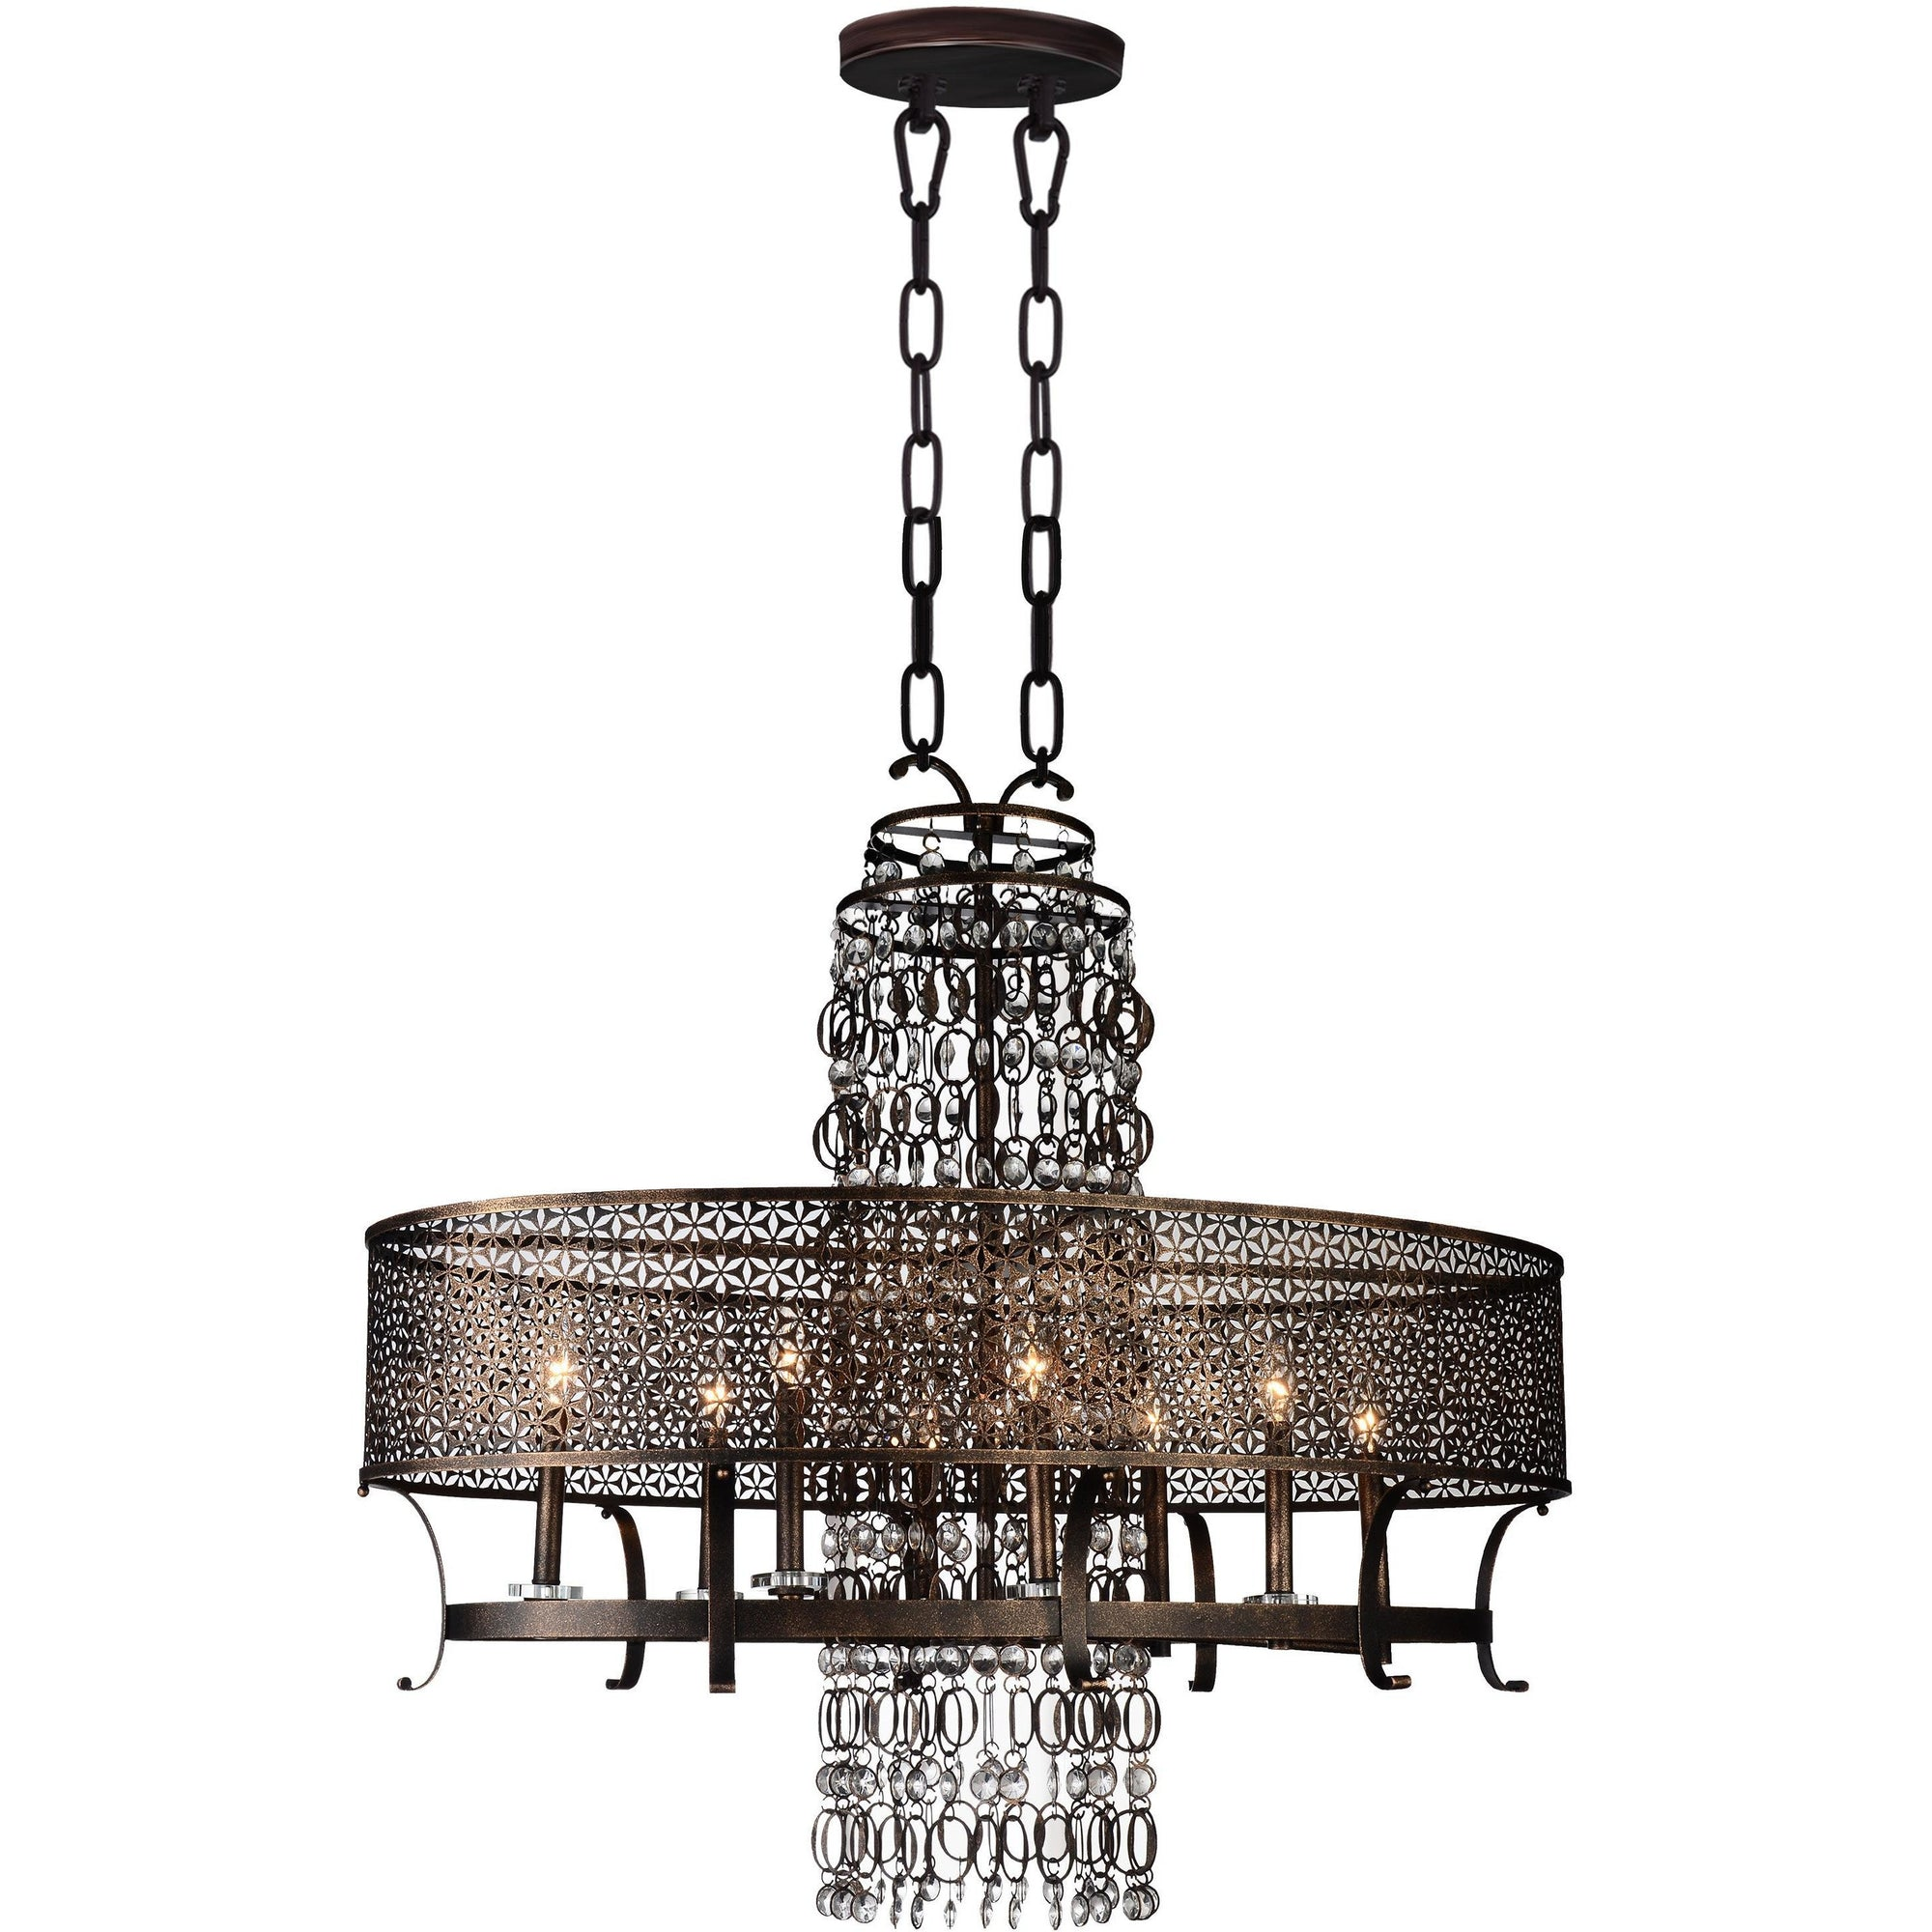 CWI Lighting Chandeliers Golden Bronze / K9 Clear Pollett 8 Light Up Chandelier with Golden Bronze finish by CWI Lighting 9901P42-8-185